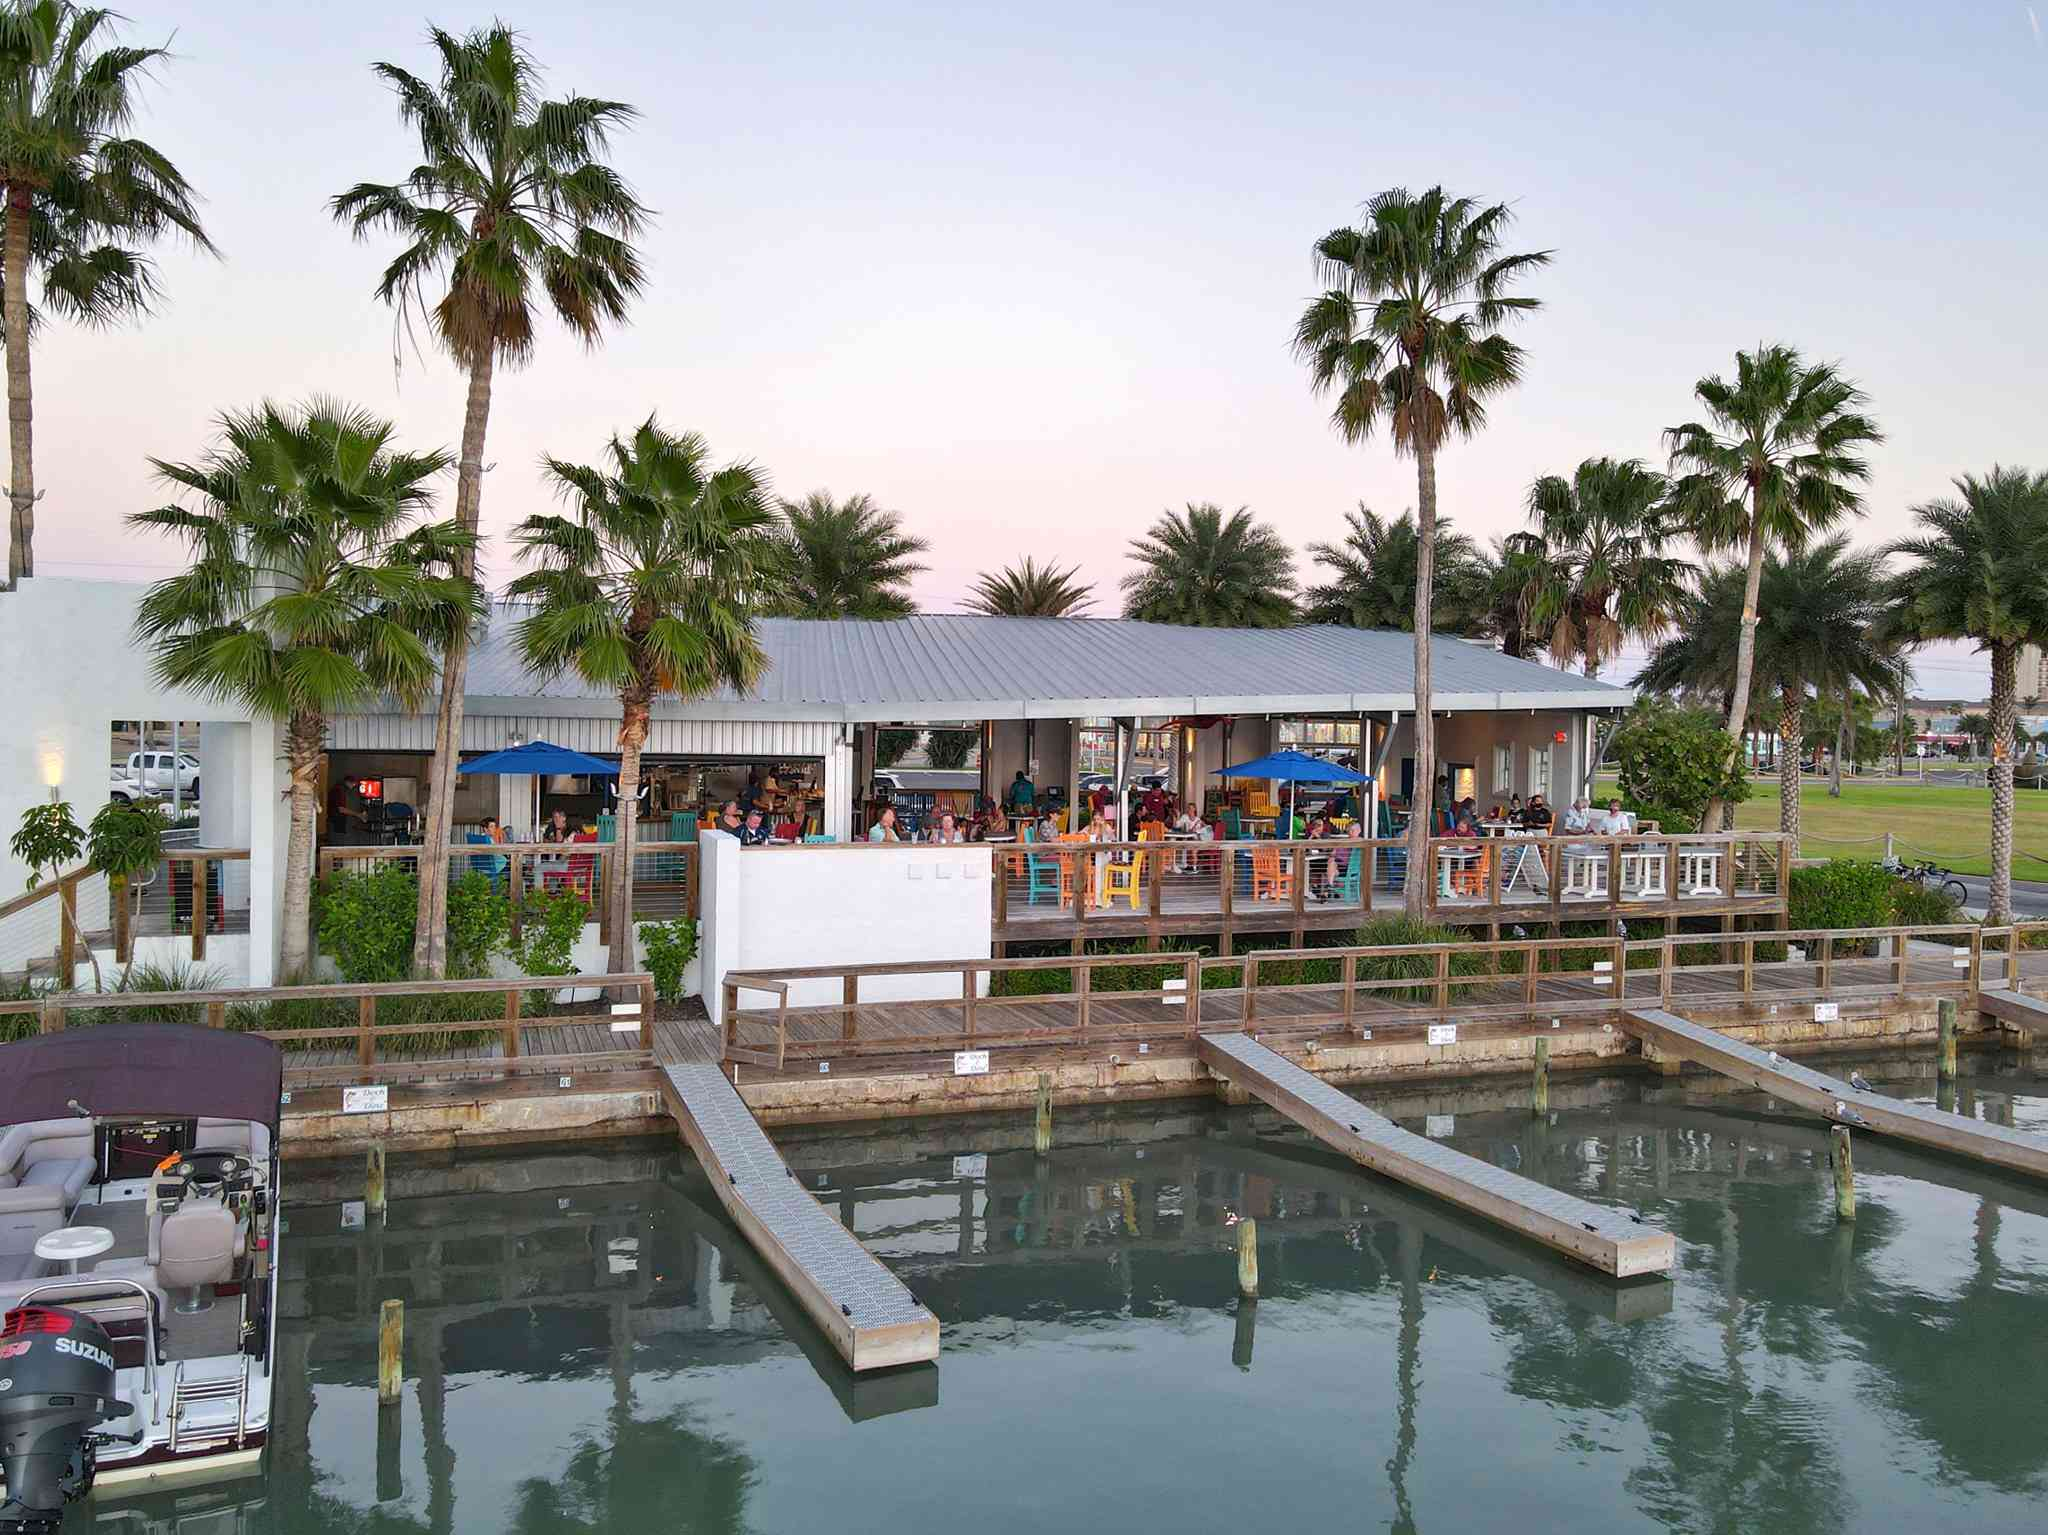 Palm trees surround the restaurant, right on the water